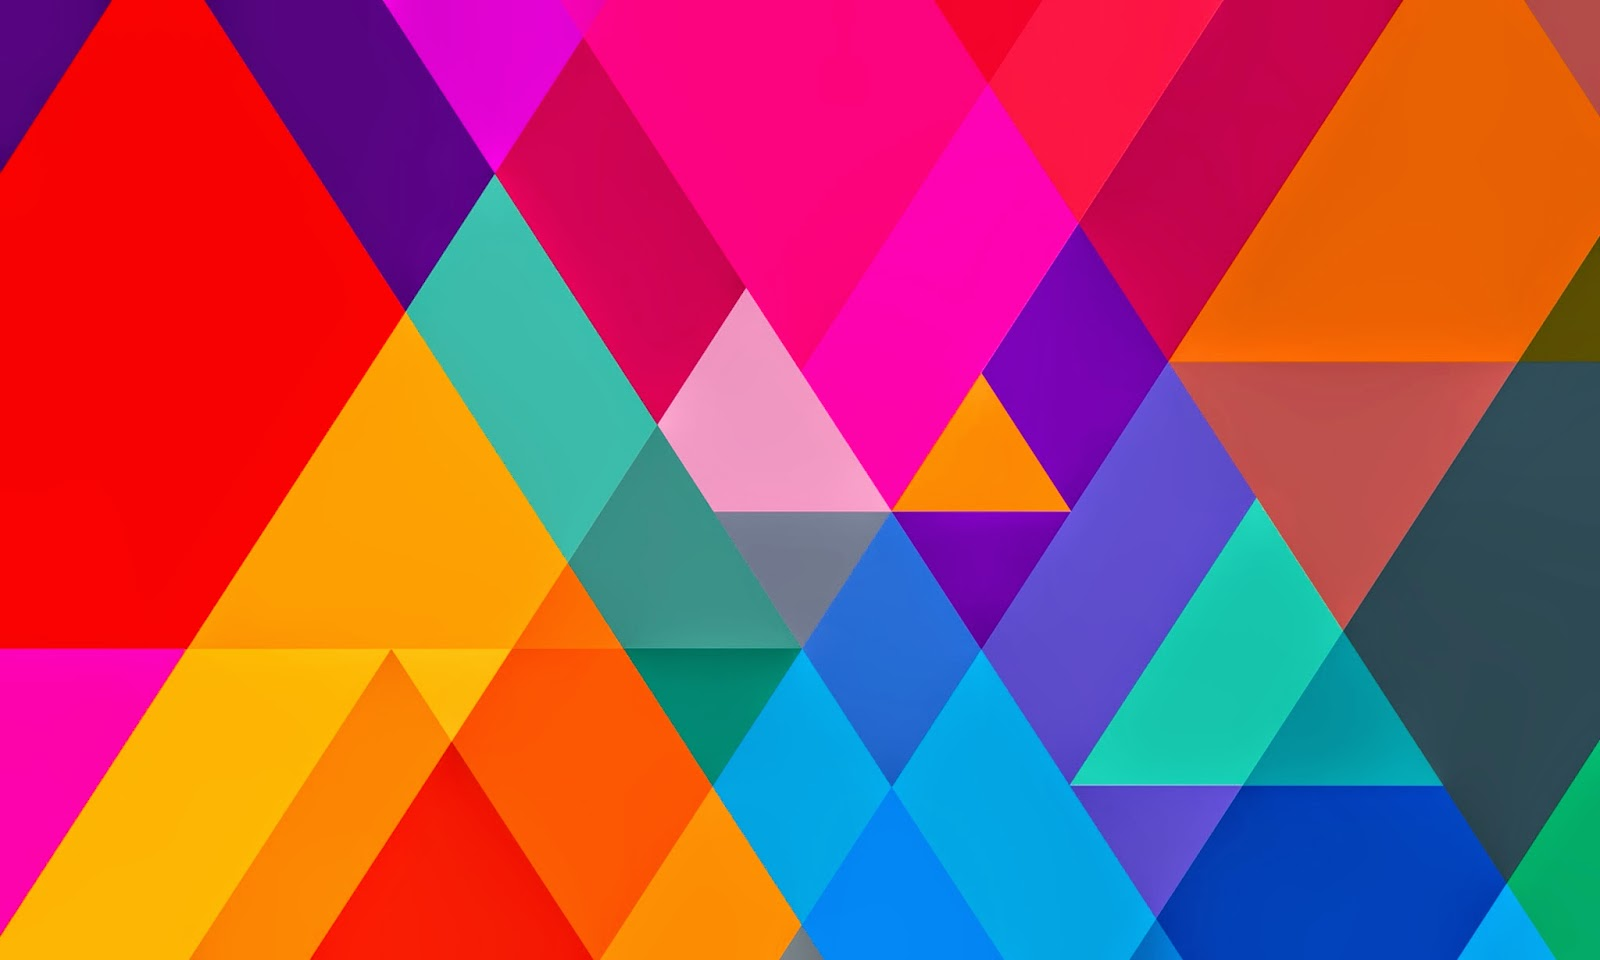 triangle abstract wallpapers - photo #14